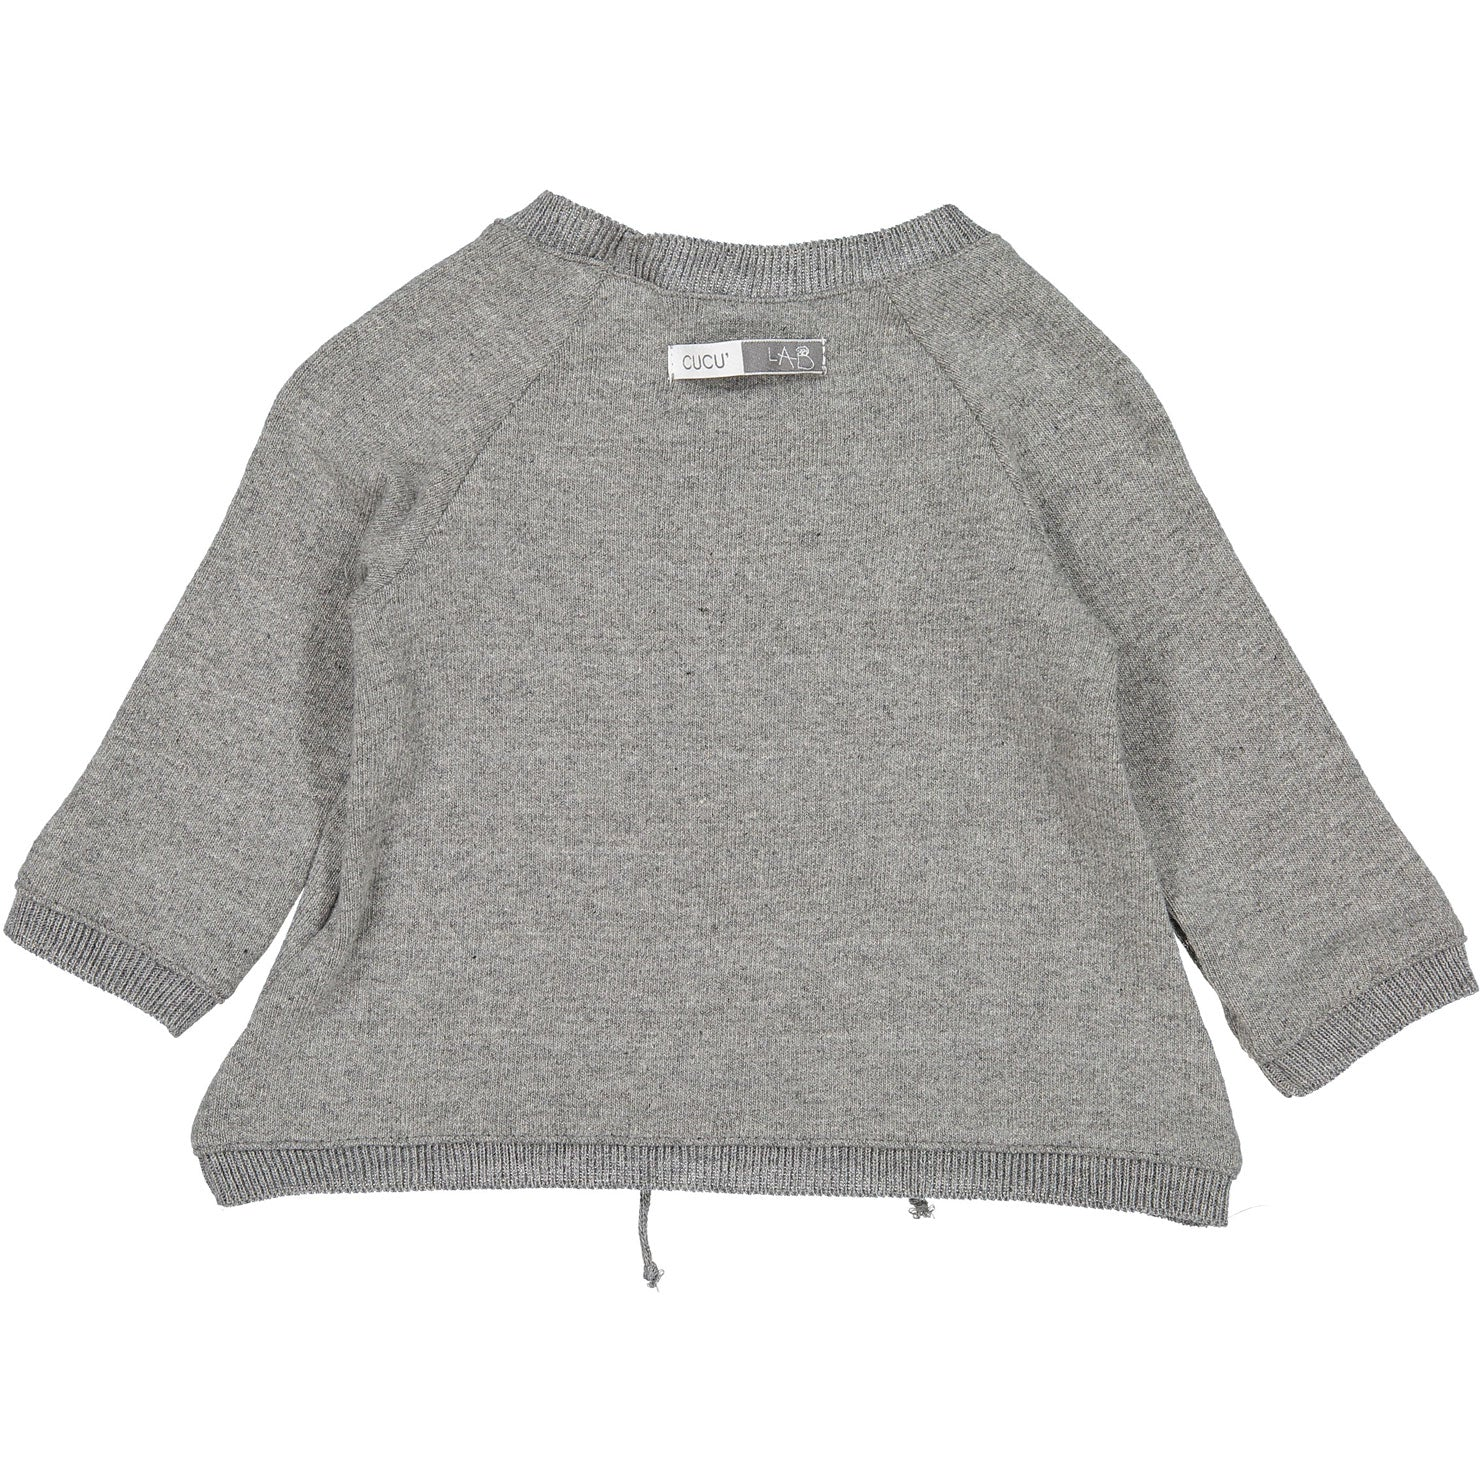 Cuculab Grey Arlette Baby Sweater - Ladida